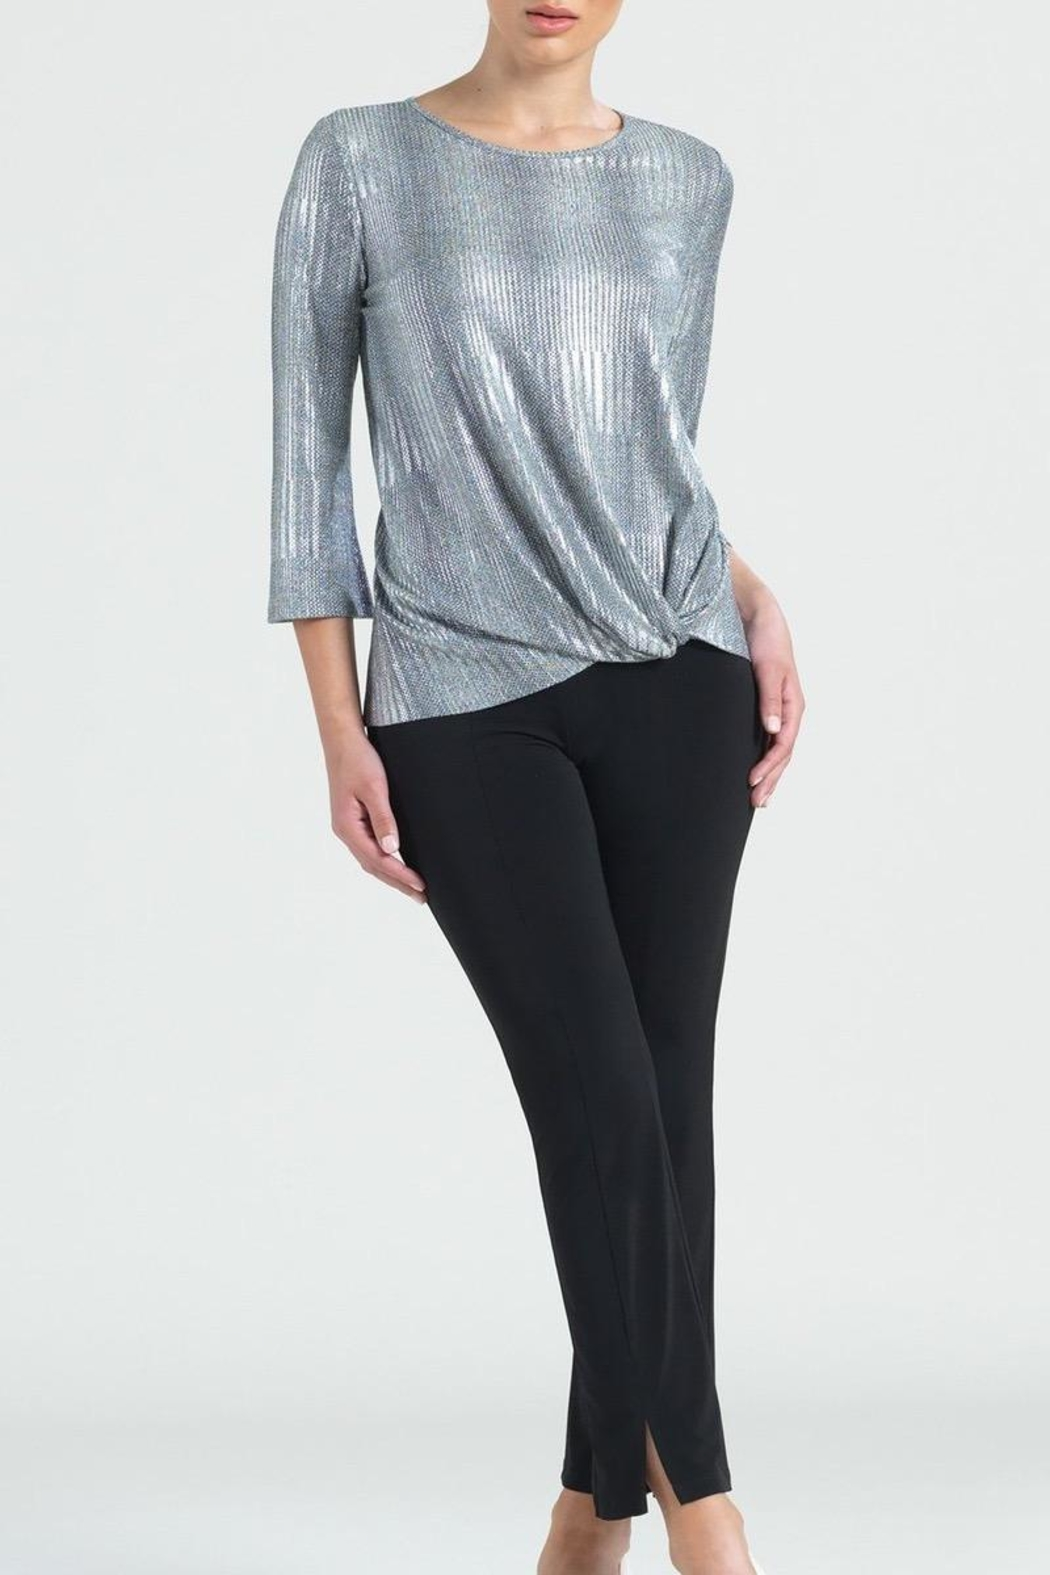 Clara Sunwoo Silver Lame Top - Front Cropped Image